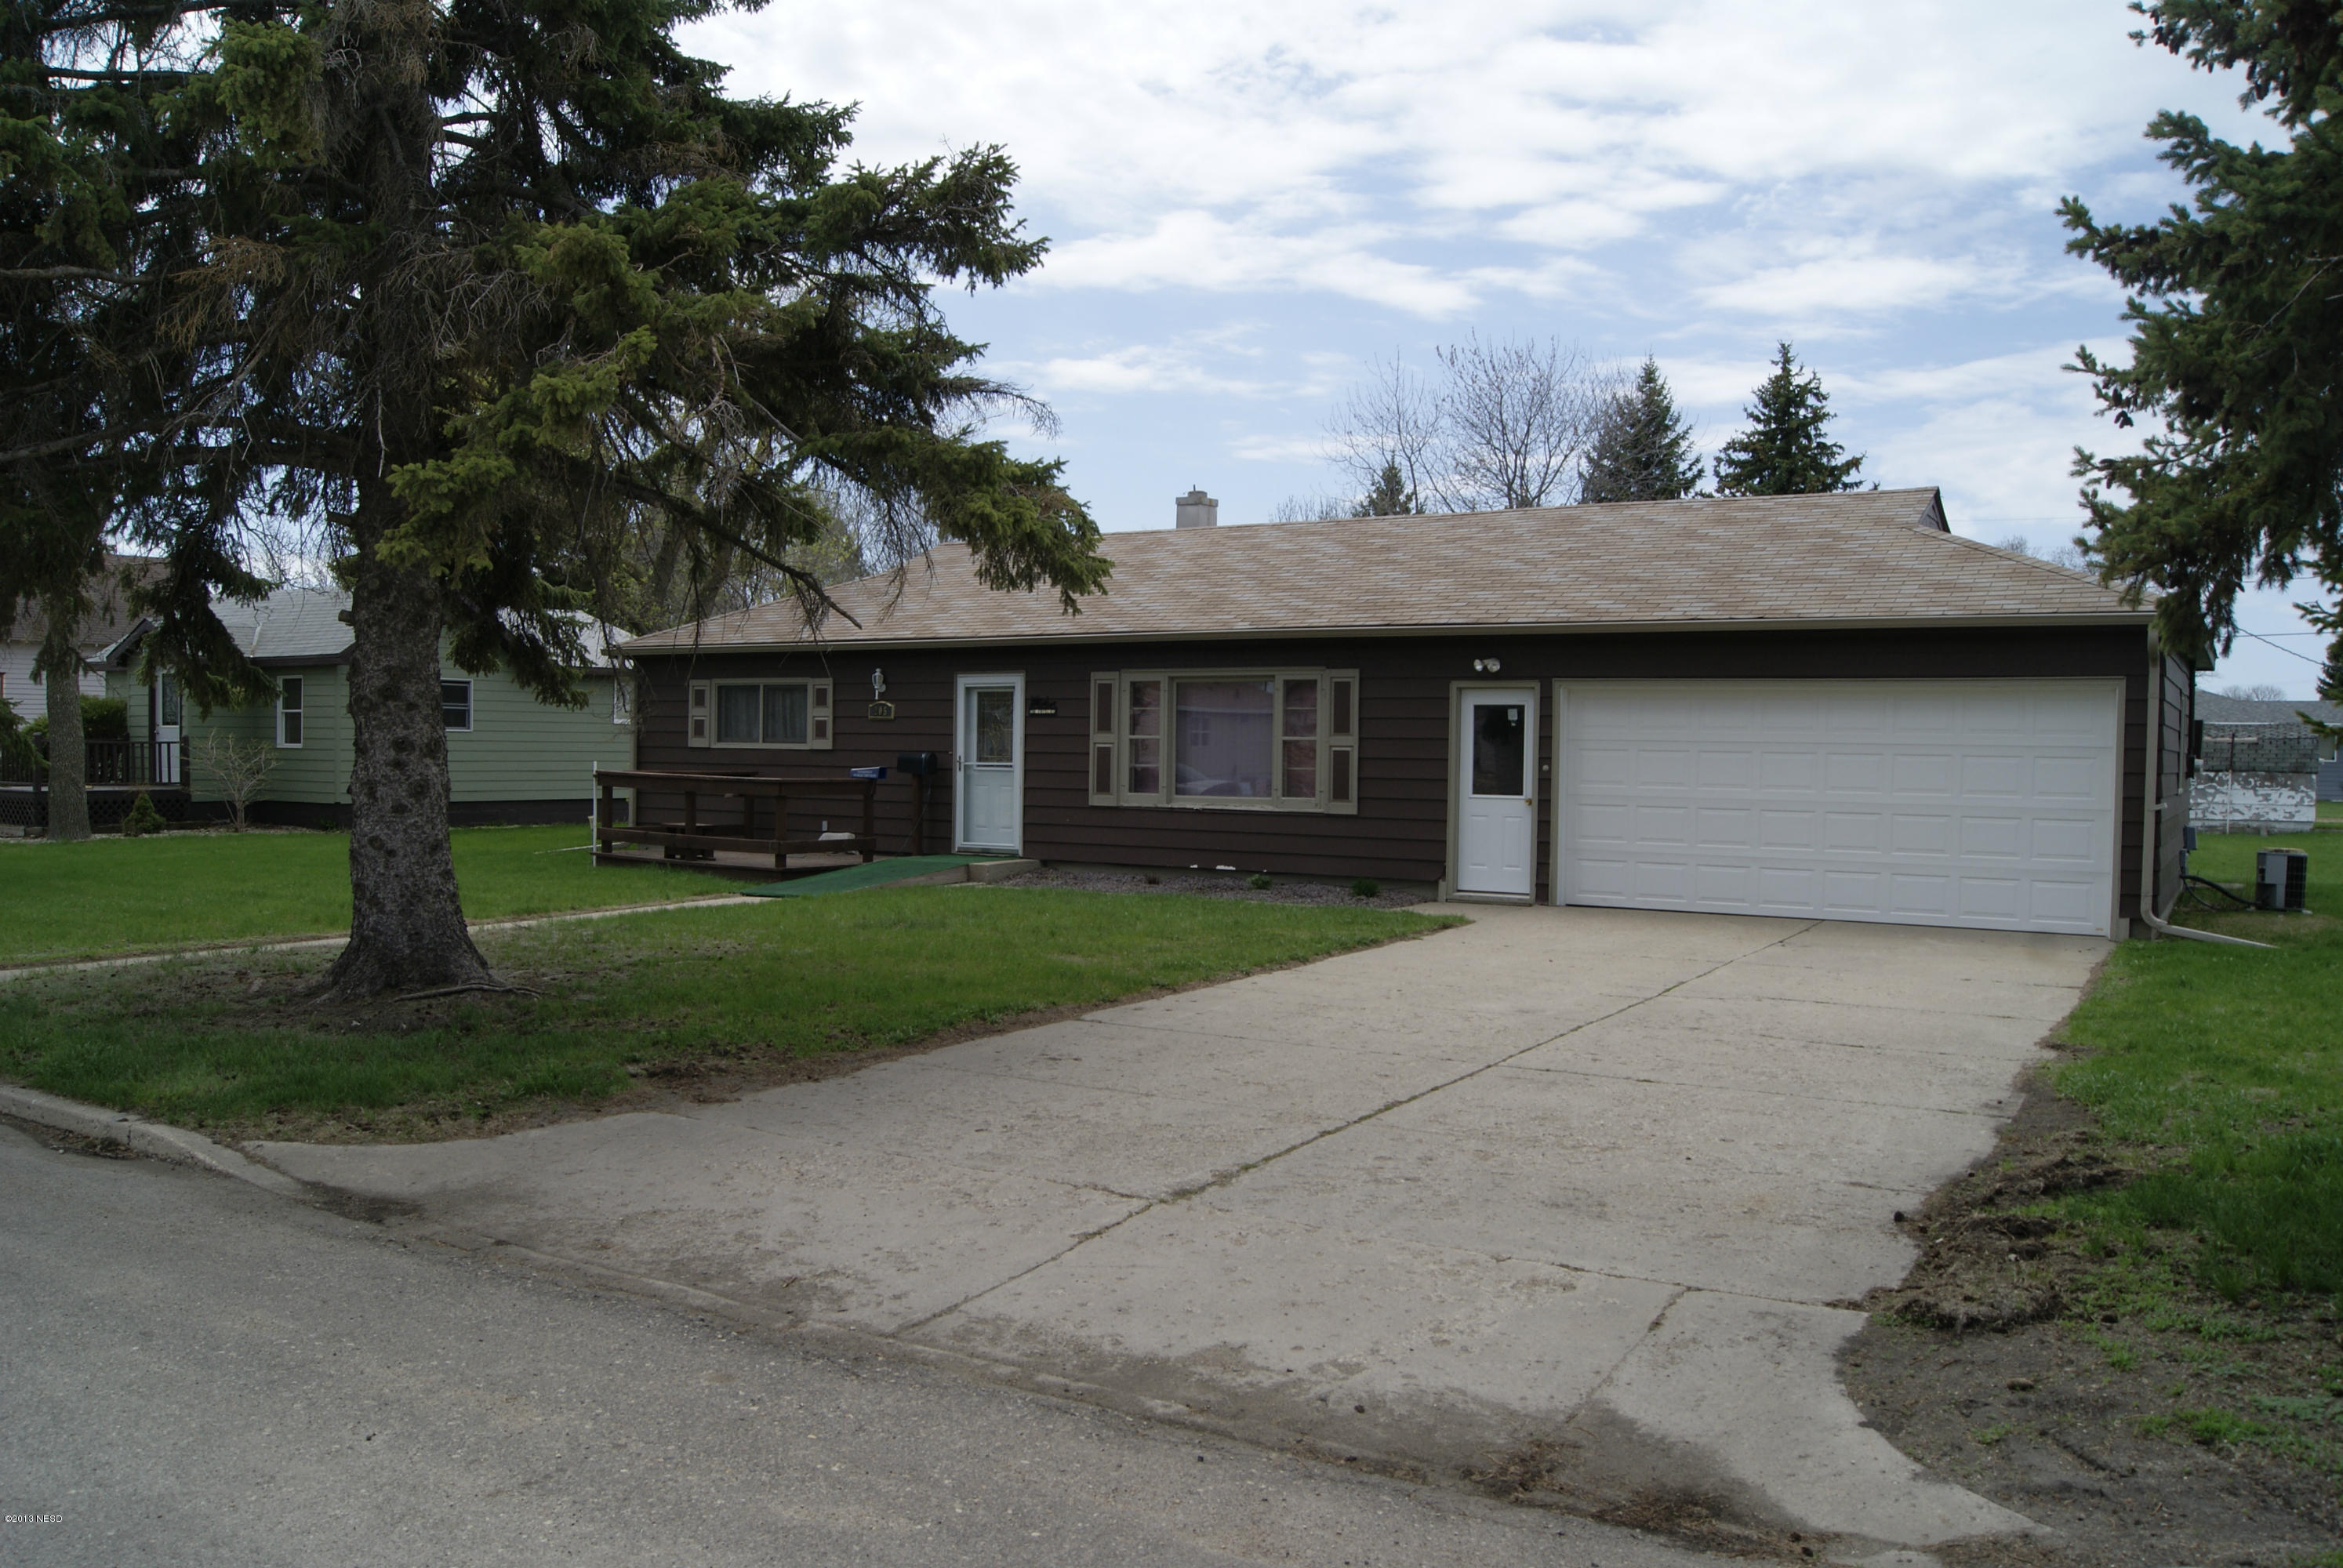 205 12TH ST, Watertown, SD 57201